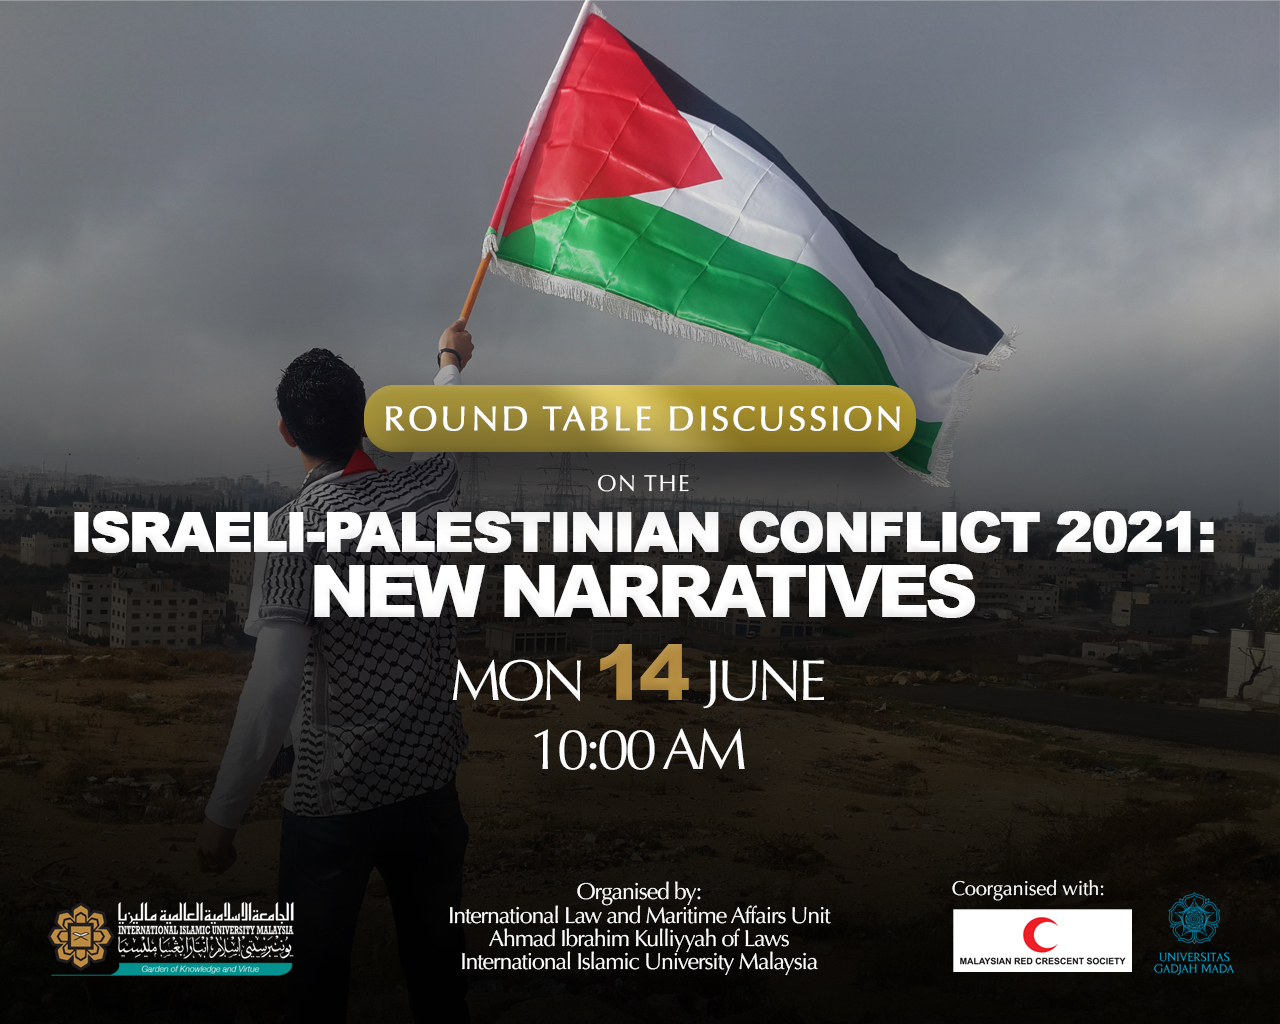 ROUND TABLE DISCUSSION ON THE ISRAELI-PALESTINIAN CONFLICT 2021: NEW NARRATIVES